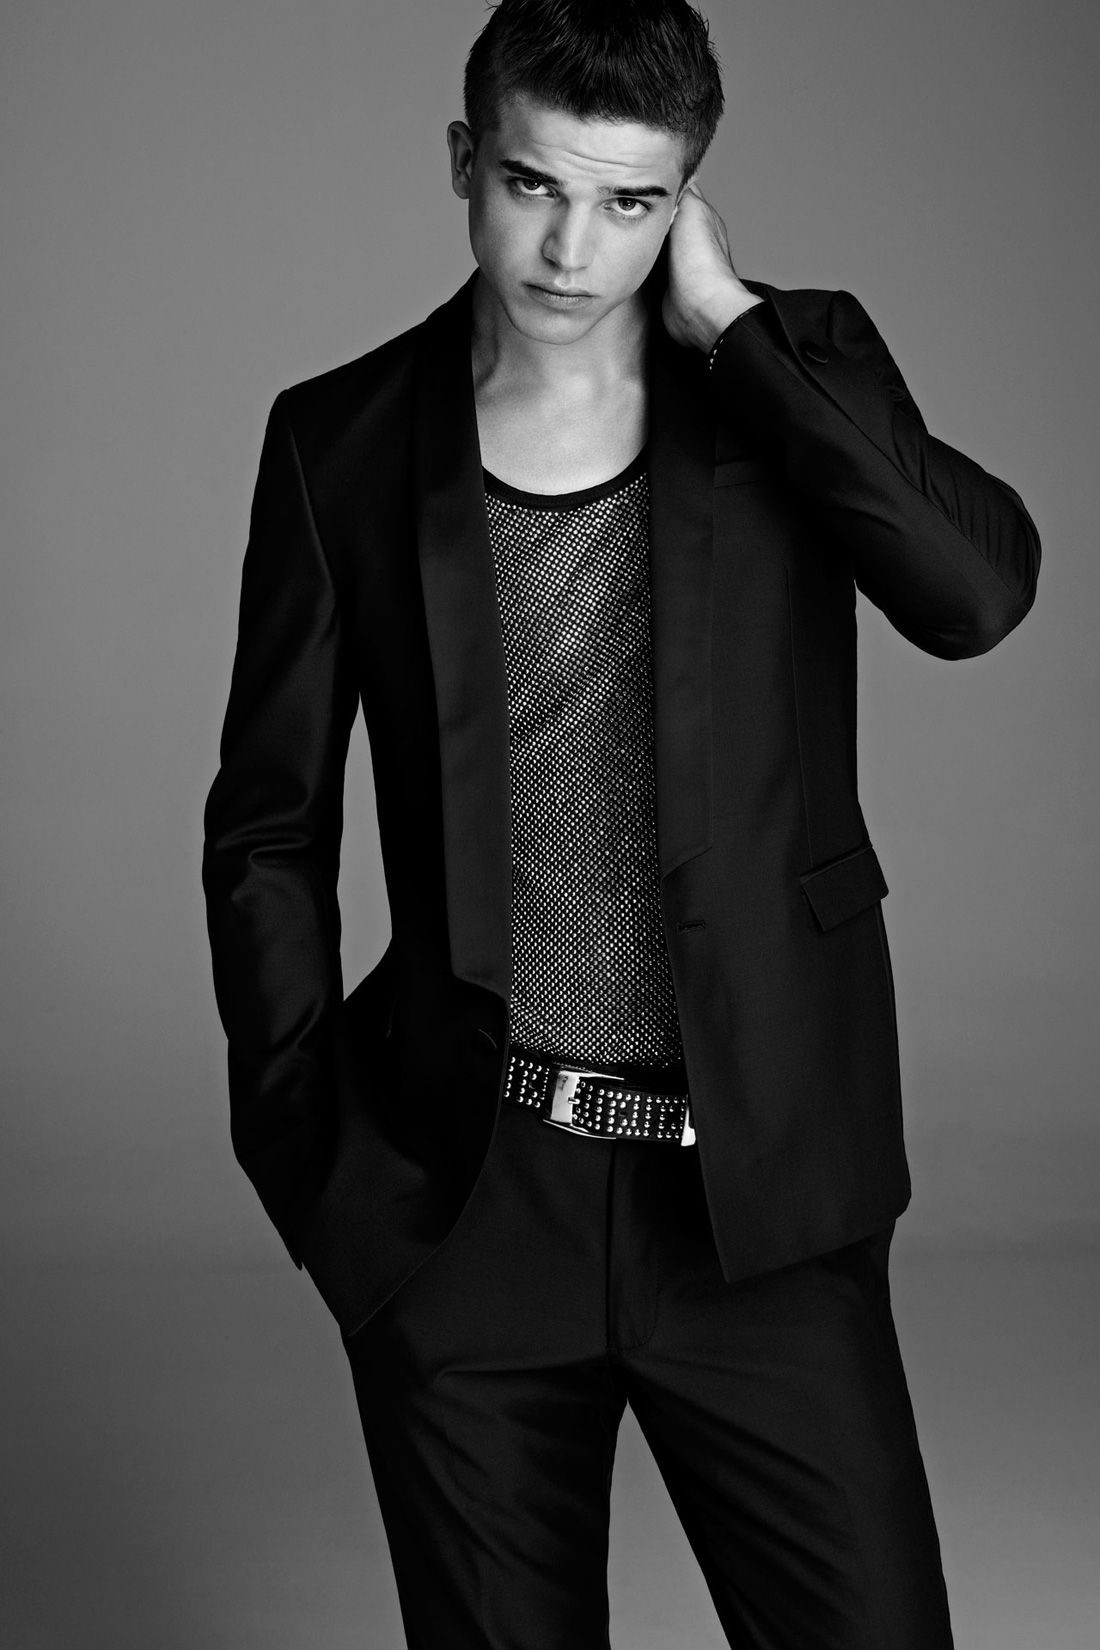 River Viiperi for Versace H&M Lookbook   Male models poses ... on Top Model Ideas  id=21636